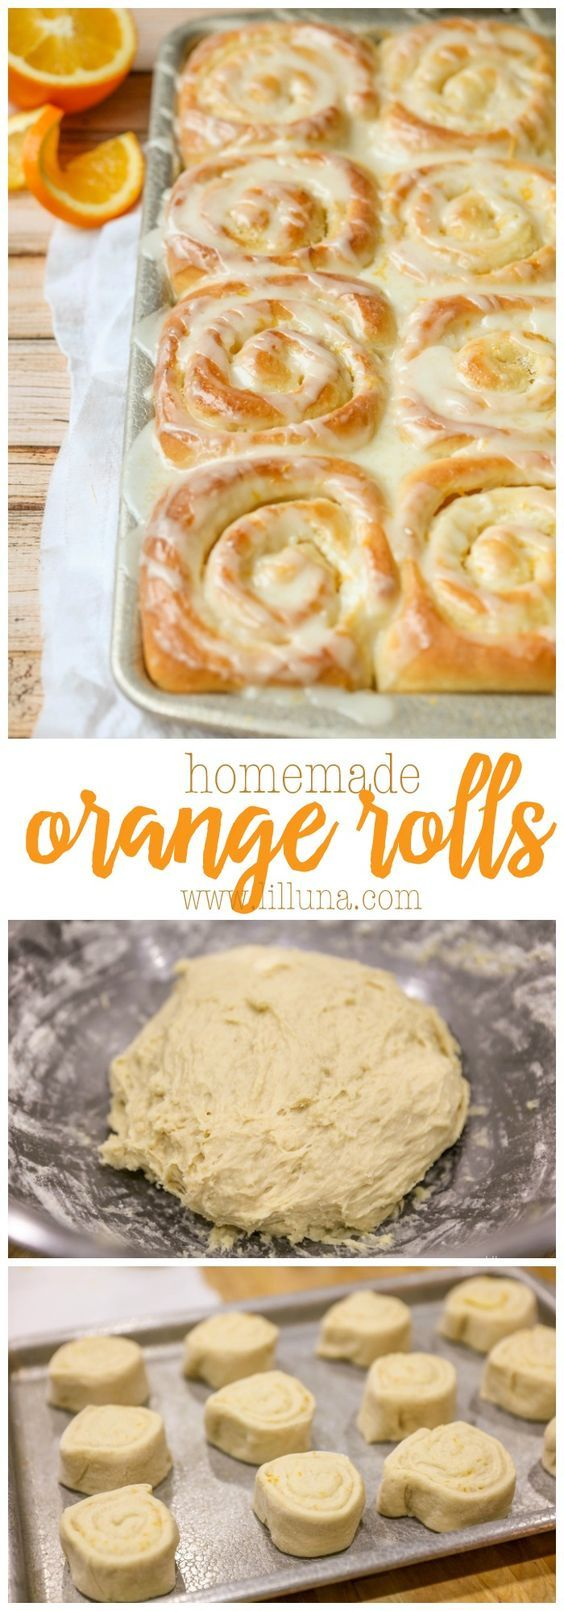 Homemade Orange Rolls - one of our favorite morning treats! Everyone loves this…